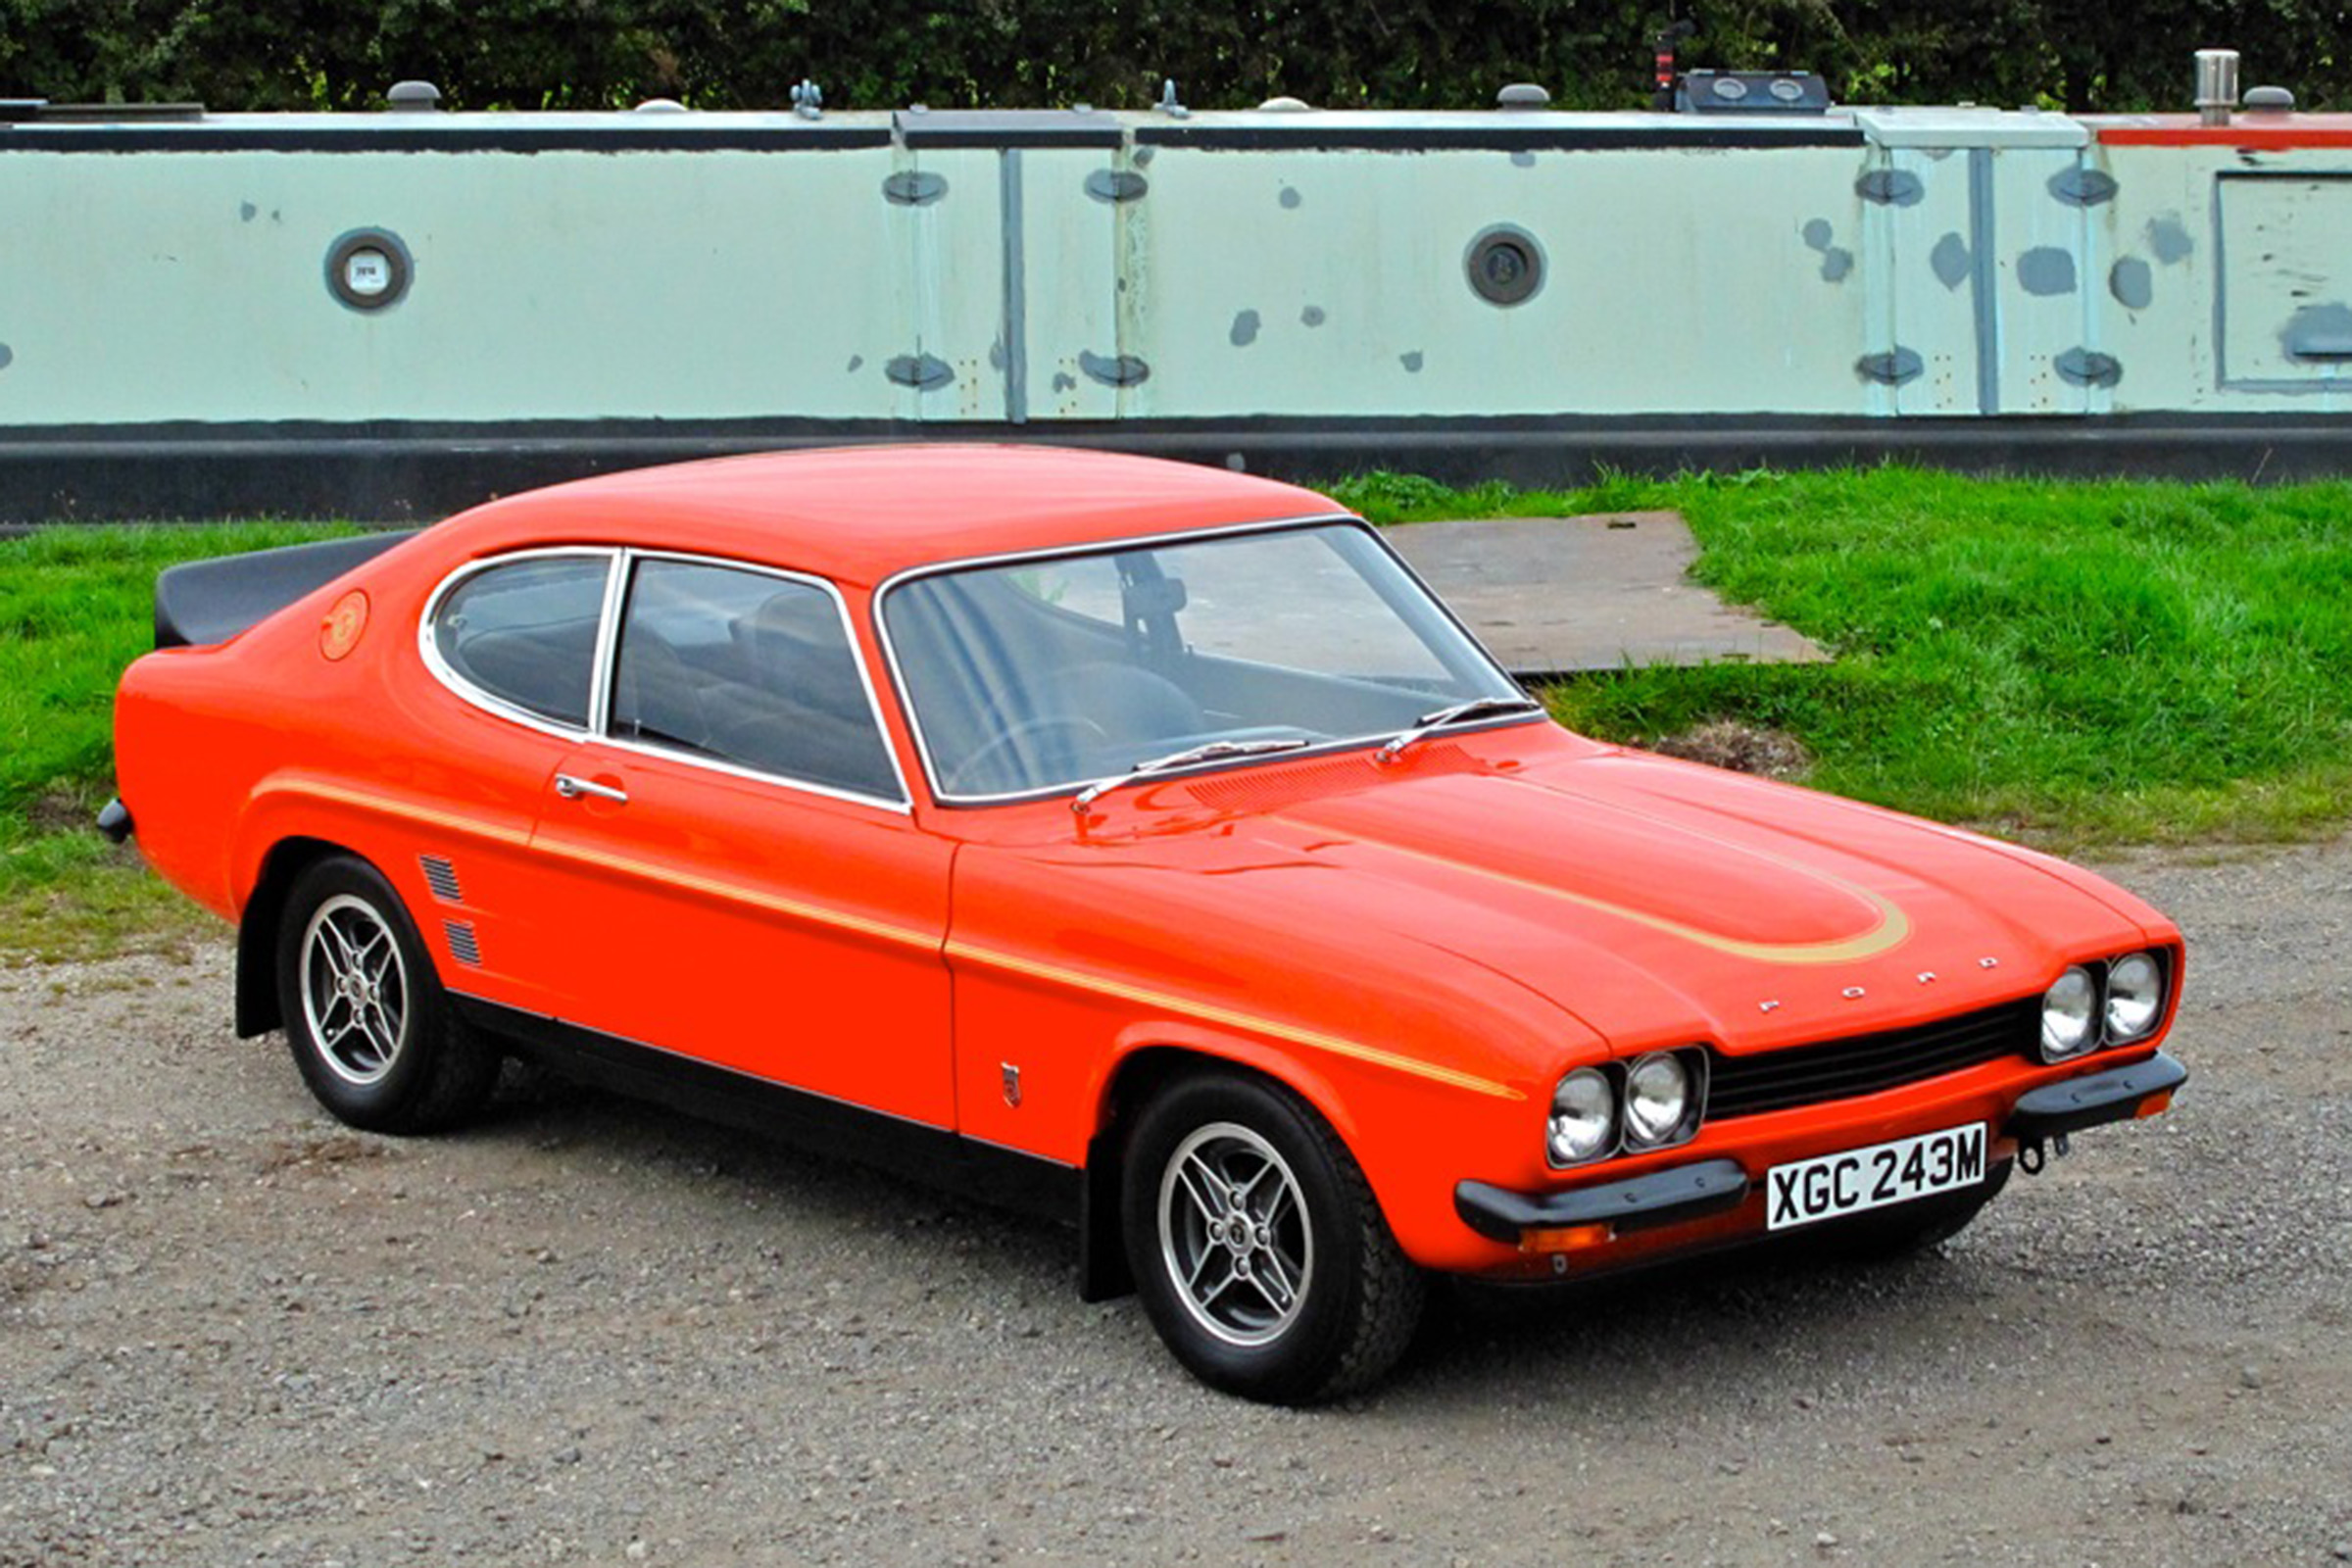 Ford Capri A History 1969 To 1986 Auto Express